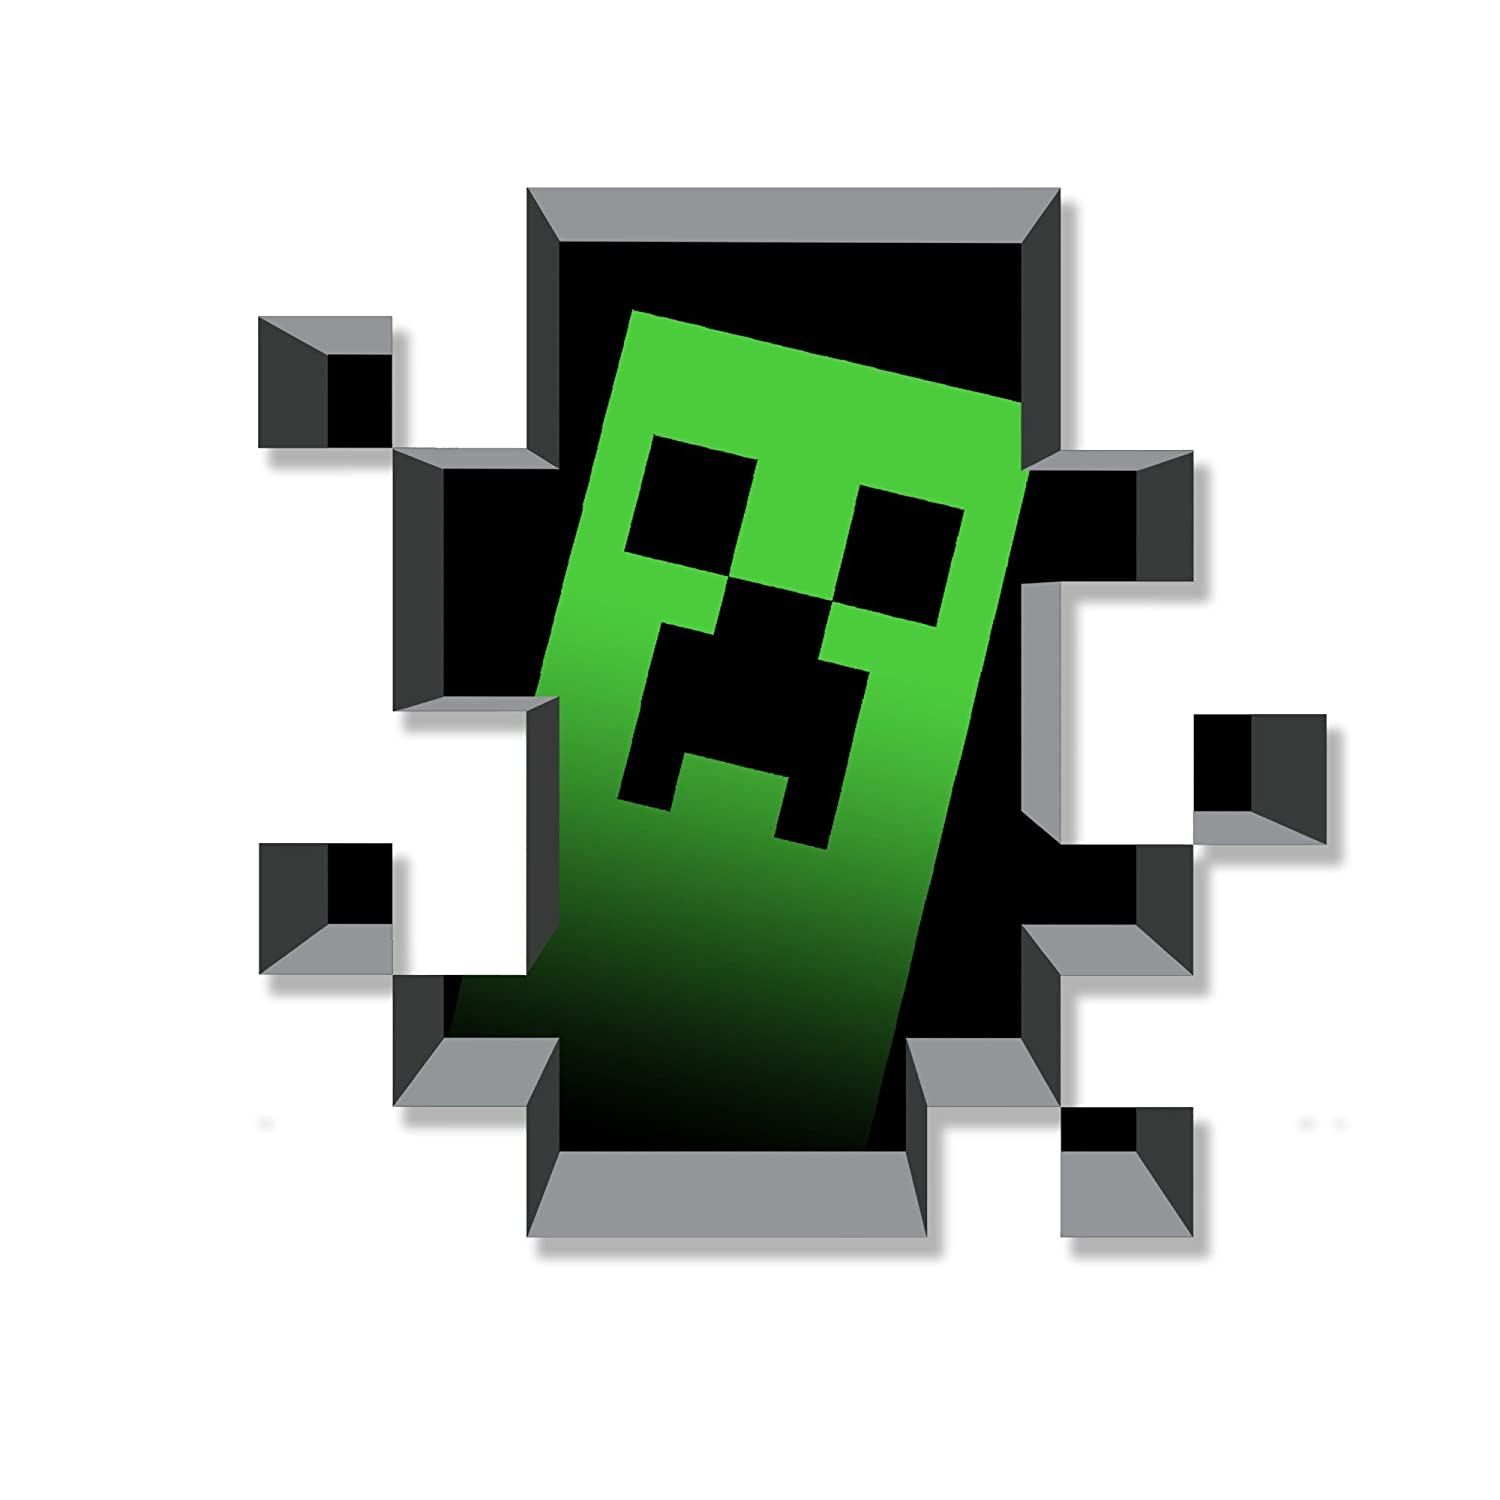 Jordan Wall Sticker Minecraft Creeper Images Wallpaper And Free Download